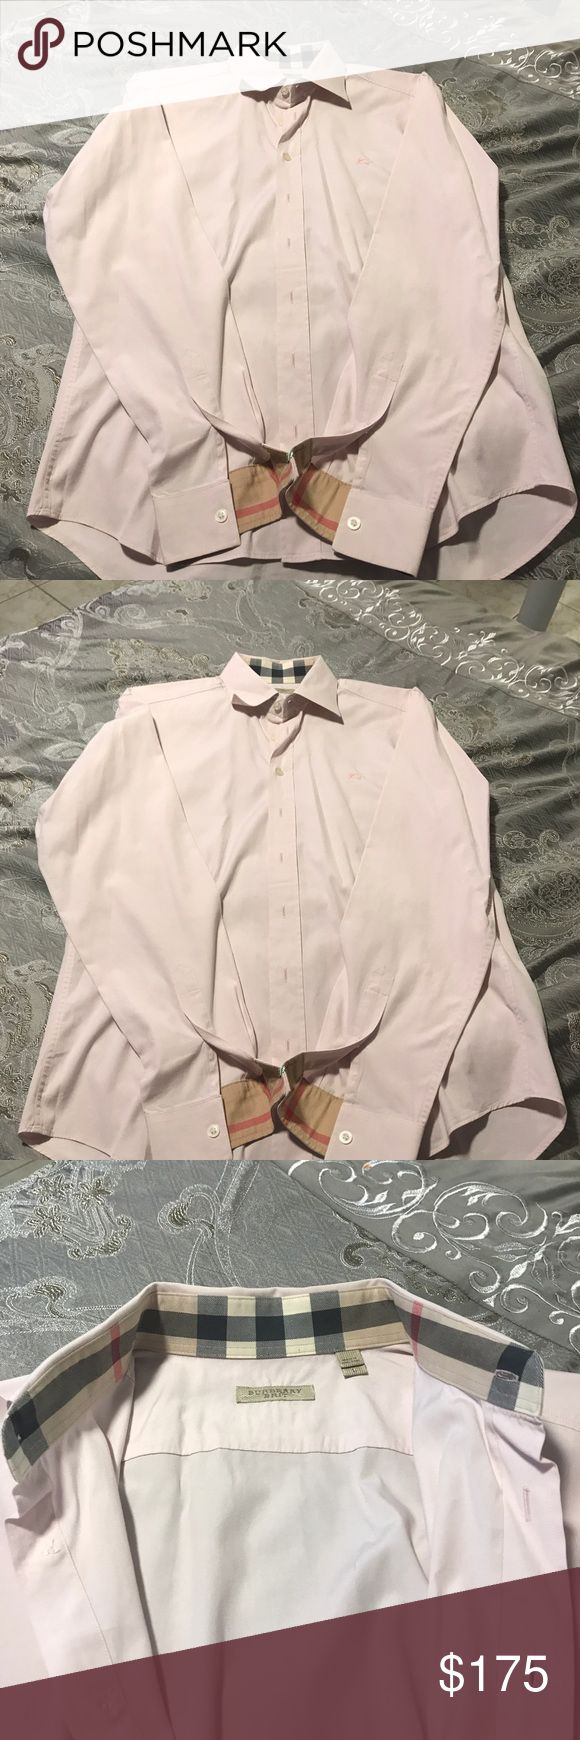 Burberry Button Down Shirt 100% Authentic Burberry Button Down Light Pink Shirt for Men! Worn Once and Dry Cleaned. Size L for Men. Fast Shipping (will ship the same day or the following day)Retail Price $295.00 Burberry Shirts Dress Shirts